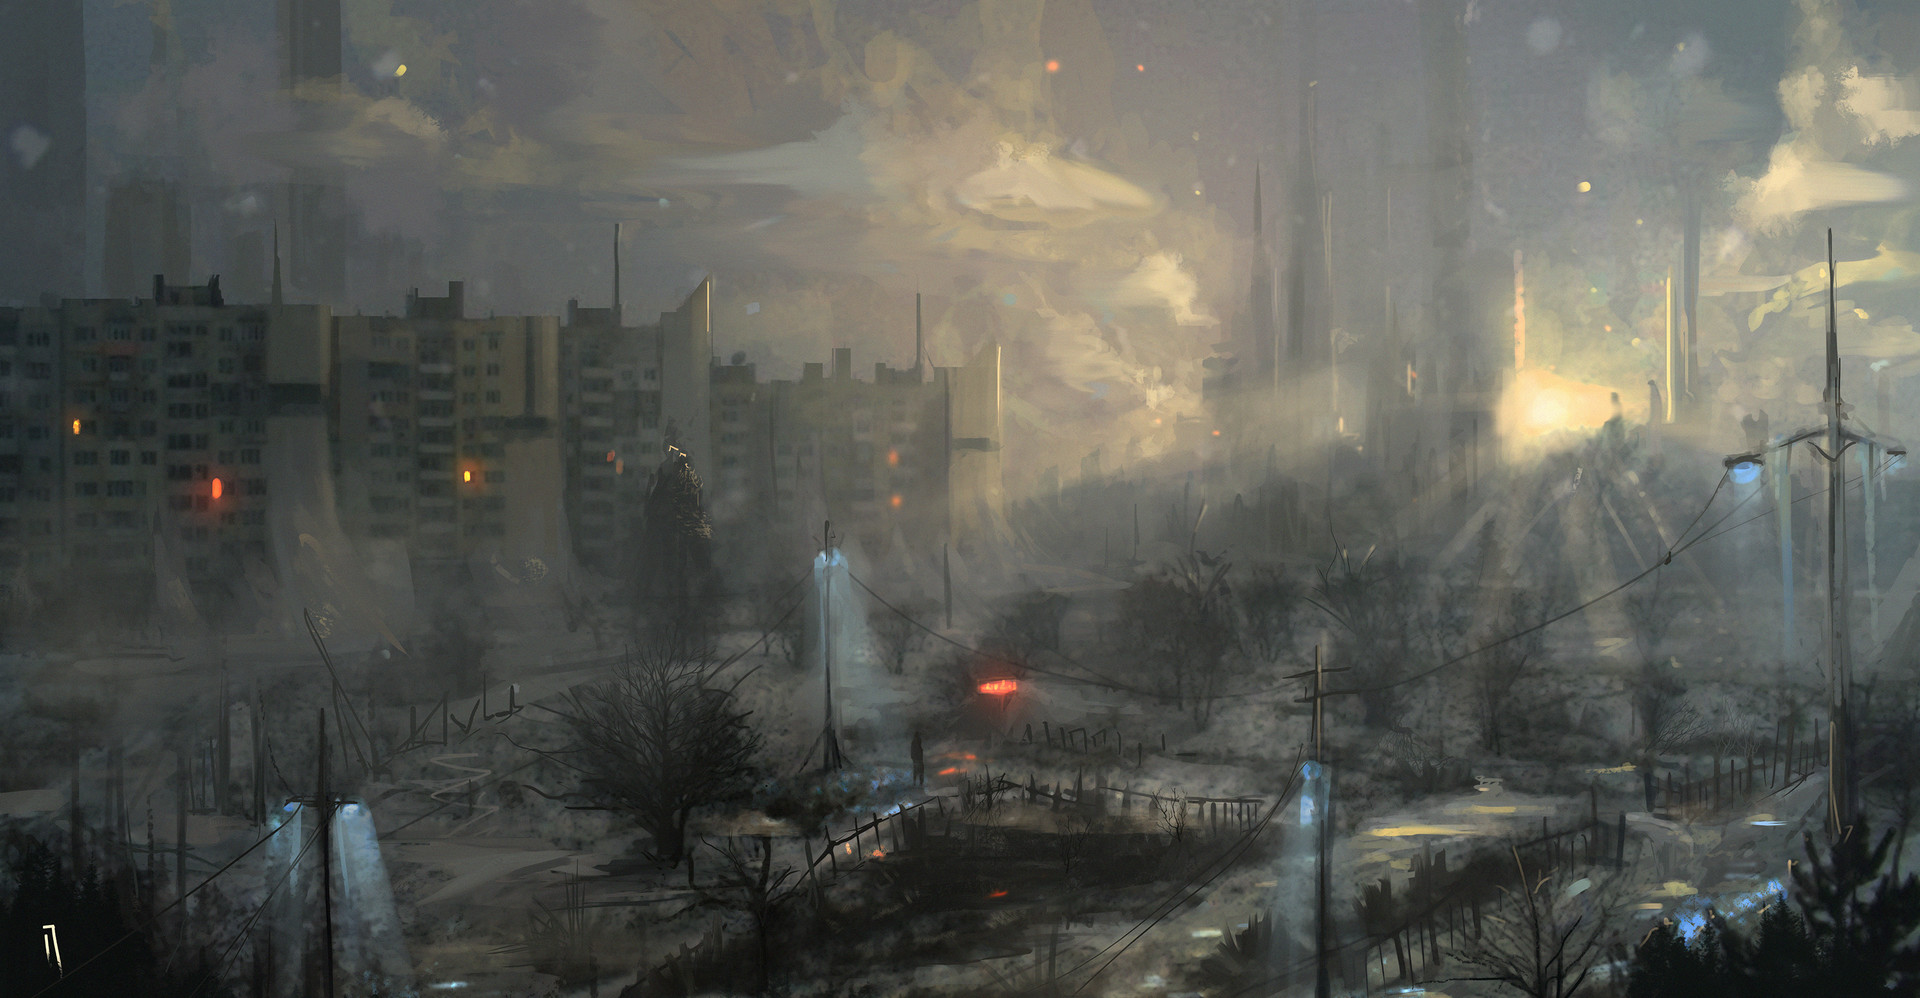 Ismail inceoglu snowbits